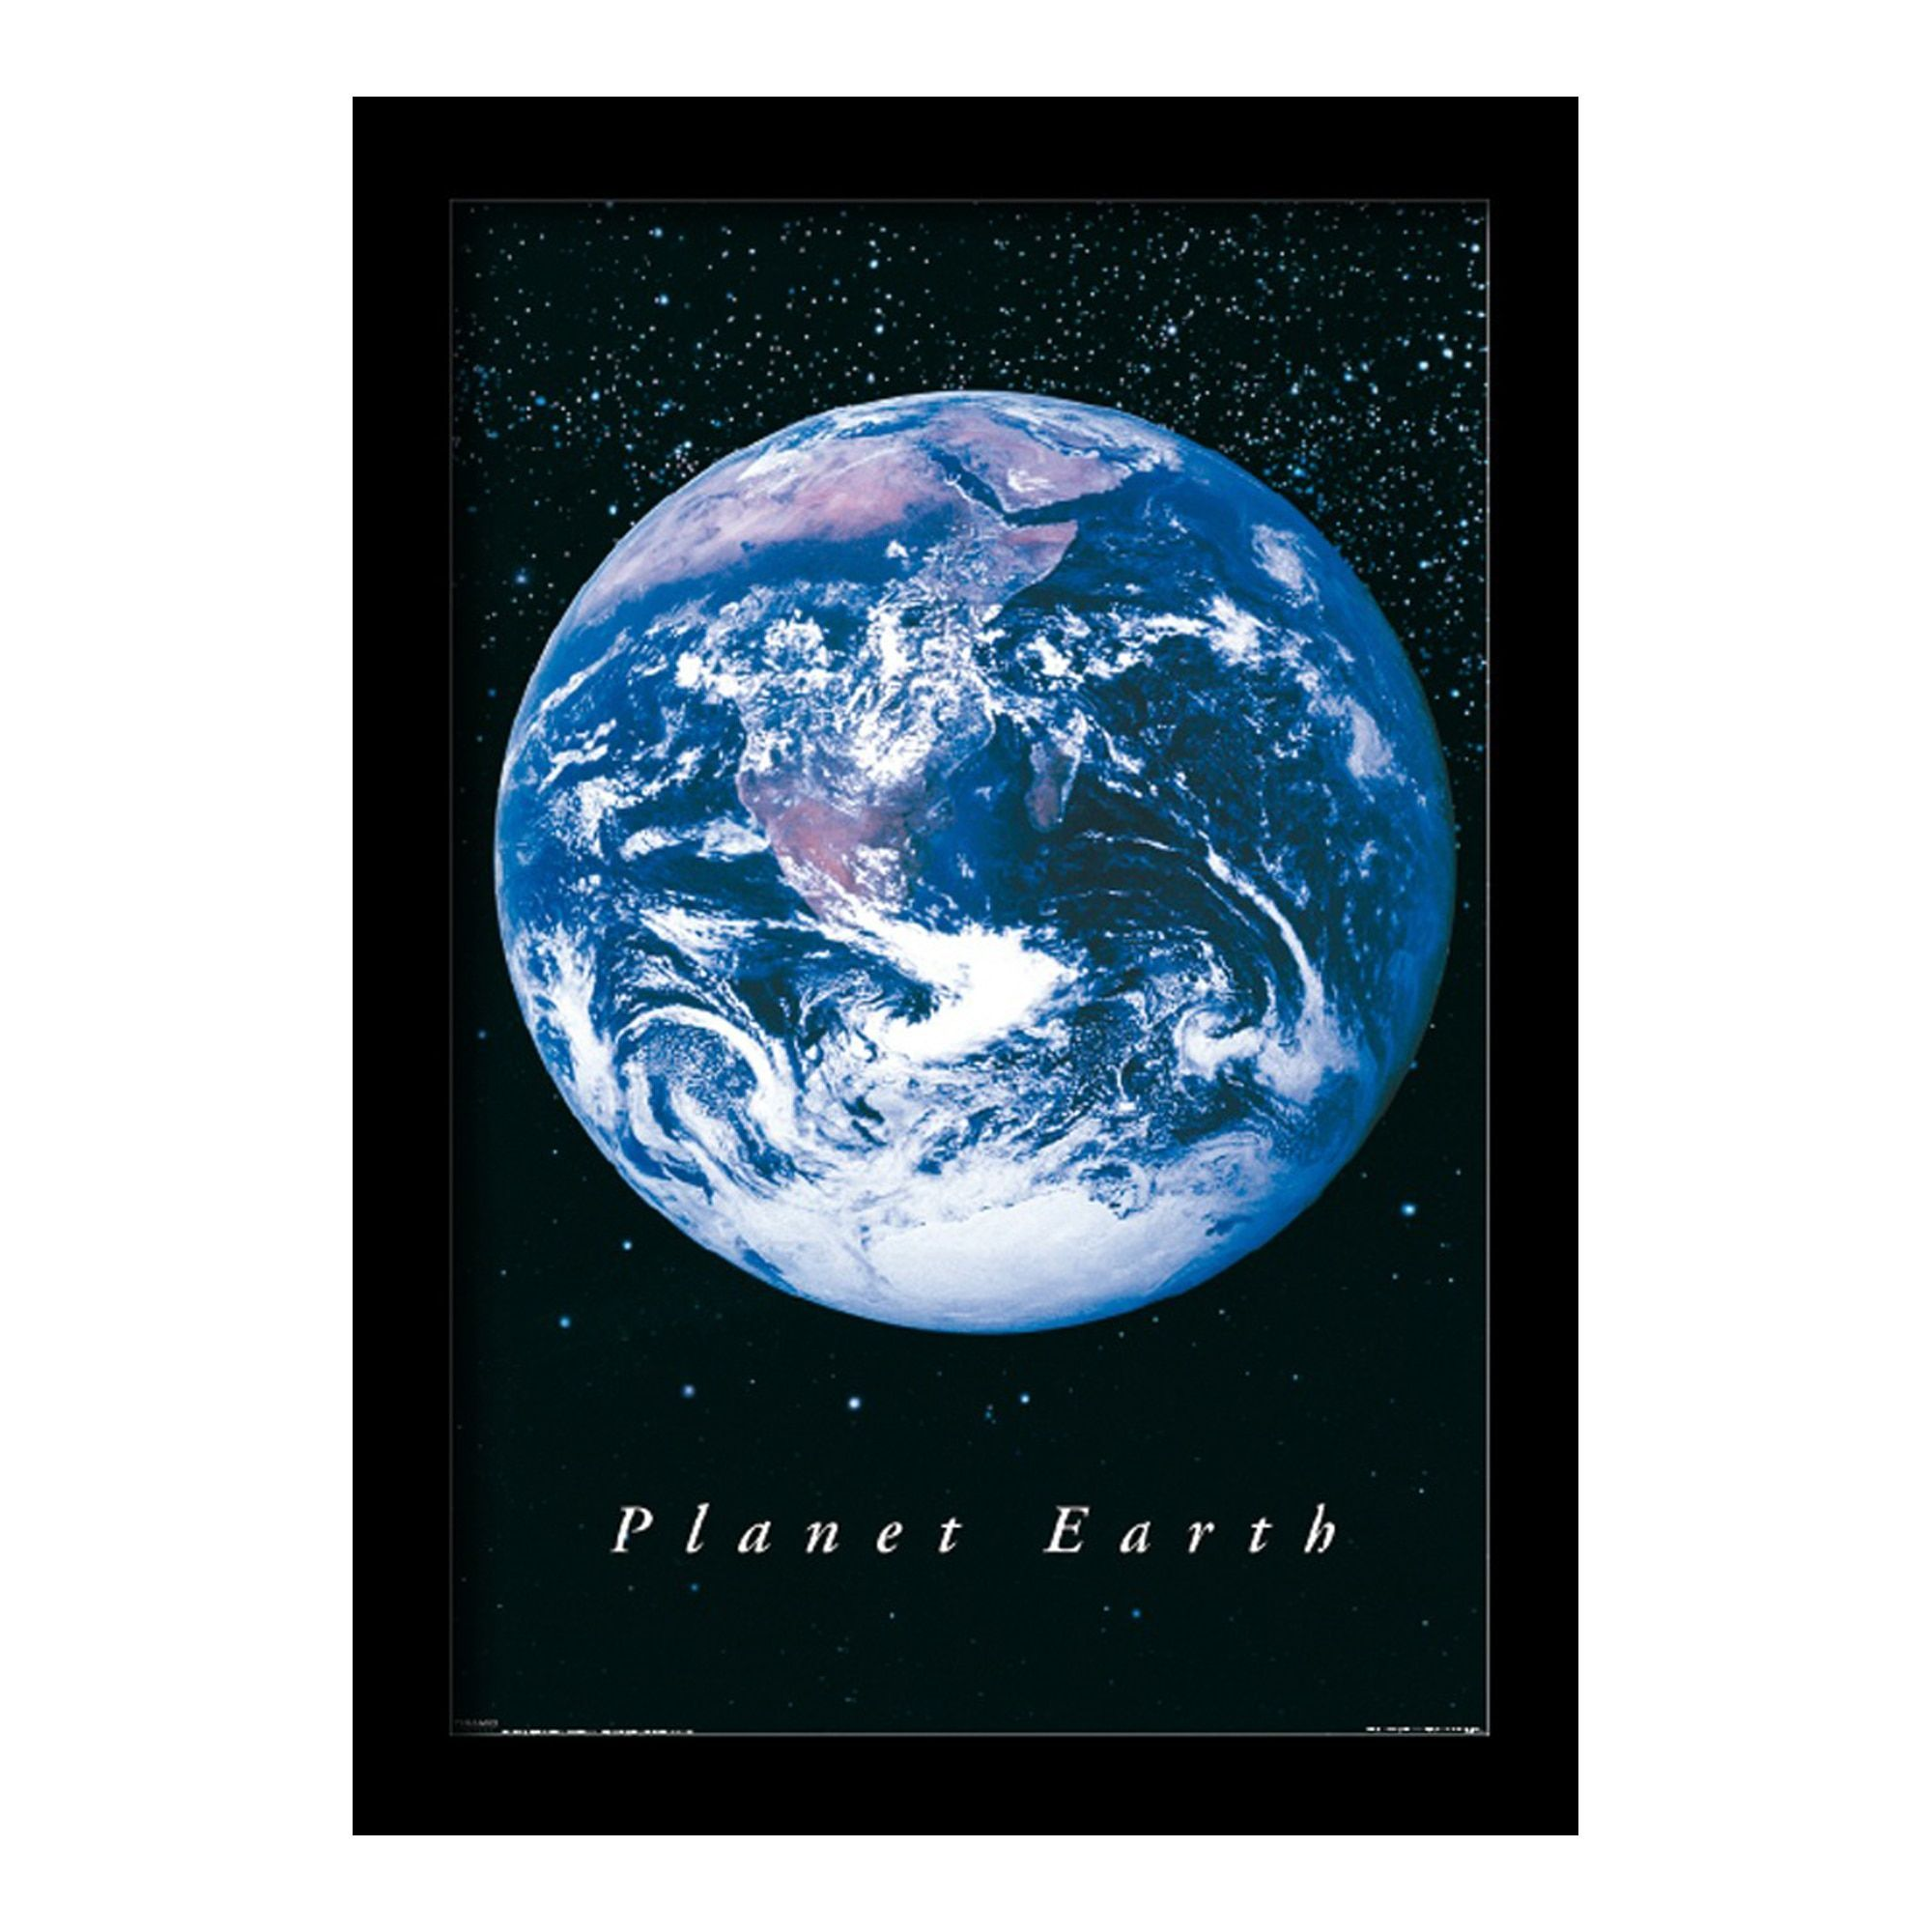 worksheet Planet Earth Pole To Pole Worksheet pyramid america planet earth framed 11x17 print project clip online art gallery earth